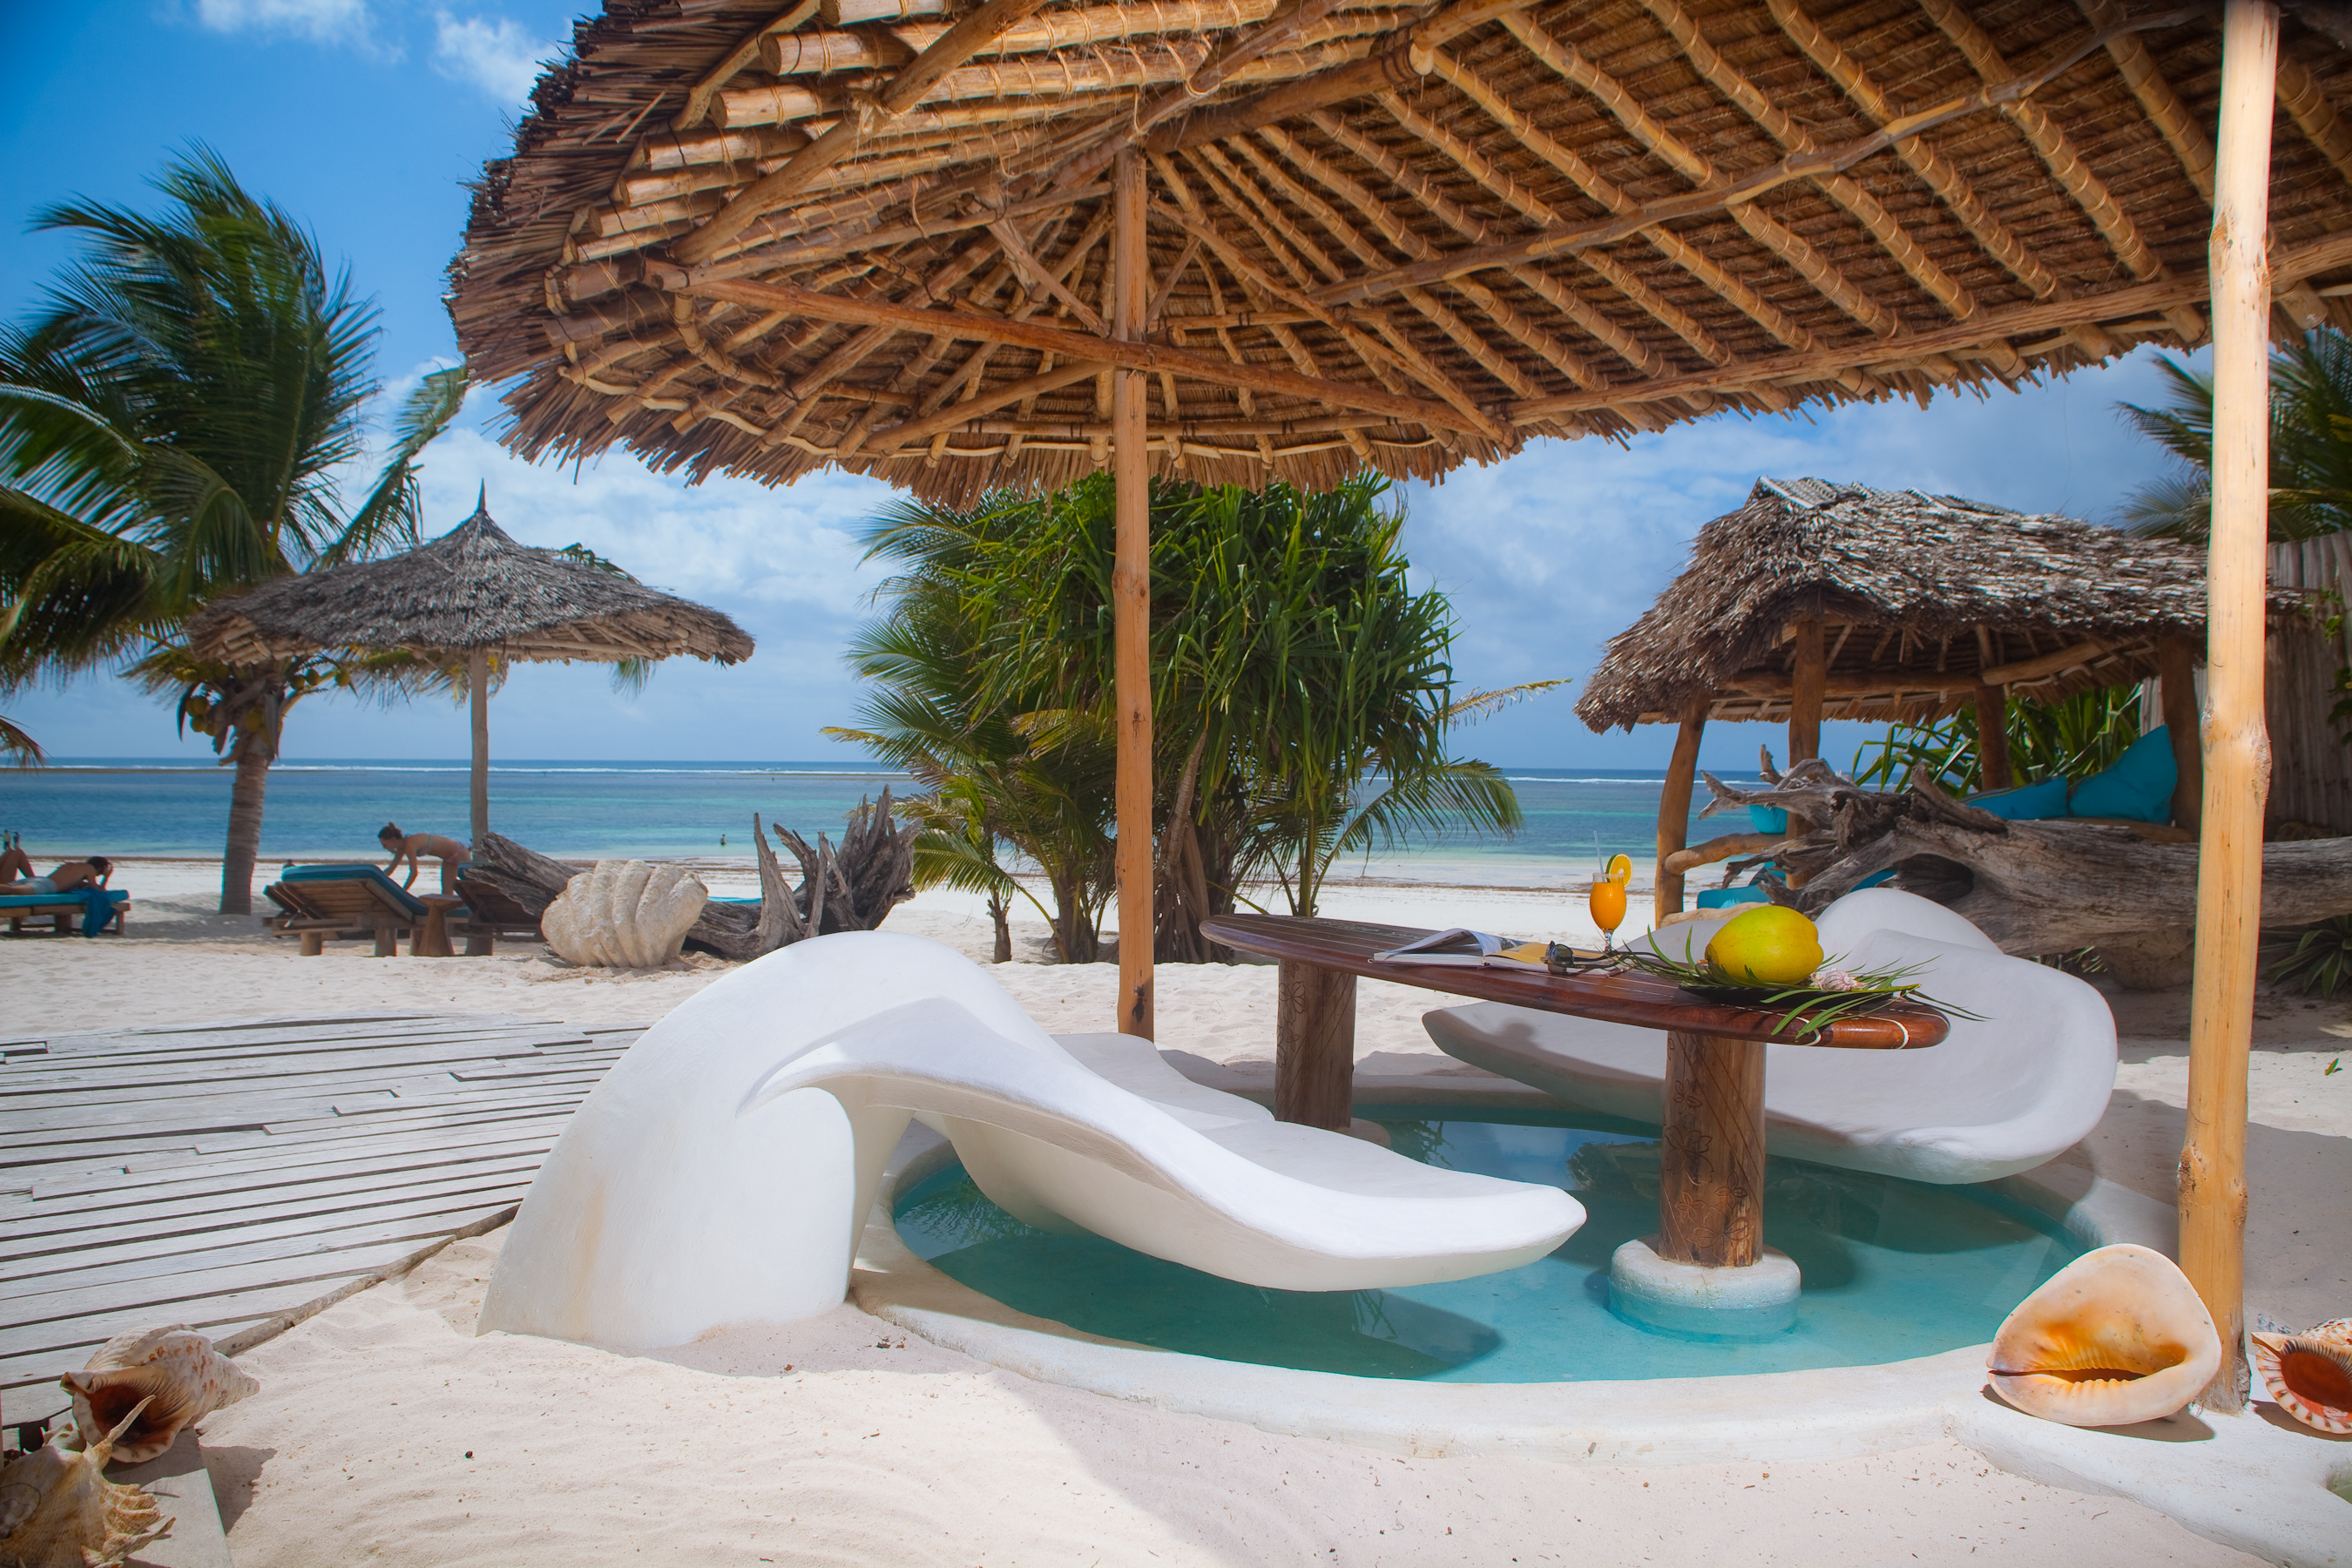 Waterlovers Beach Resort. Image from https://www.tripadvisor.co.uk/Hotel_Review-g775870-d1403906-Reviews-Waterlovers_Beach_Resort-Diani_Beach_Ukunda_Coast_Province.html